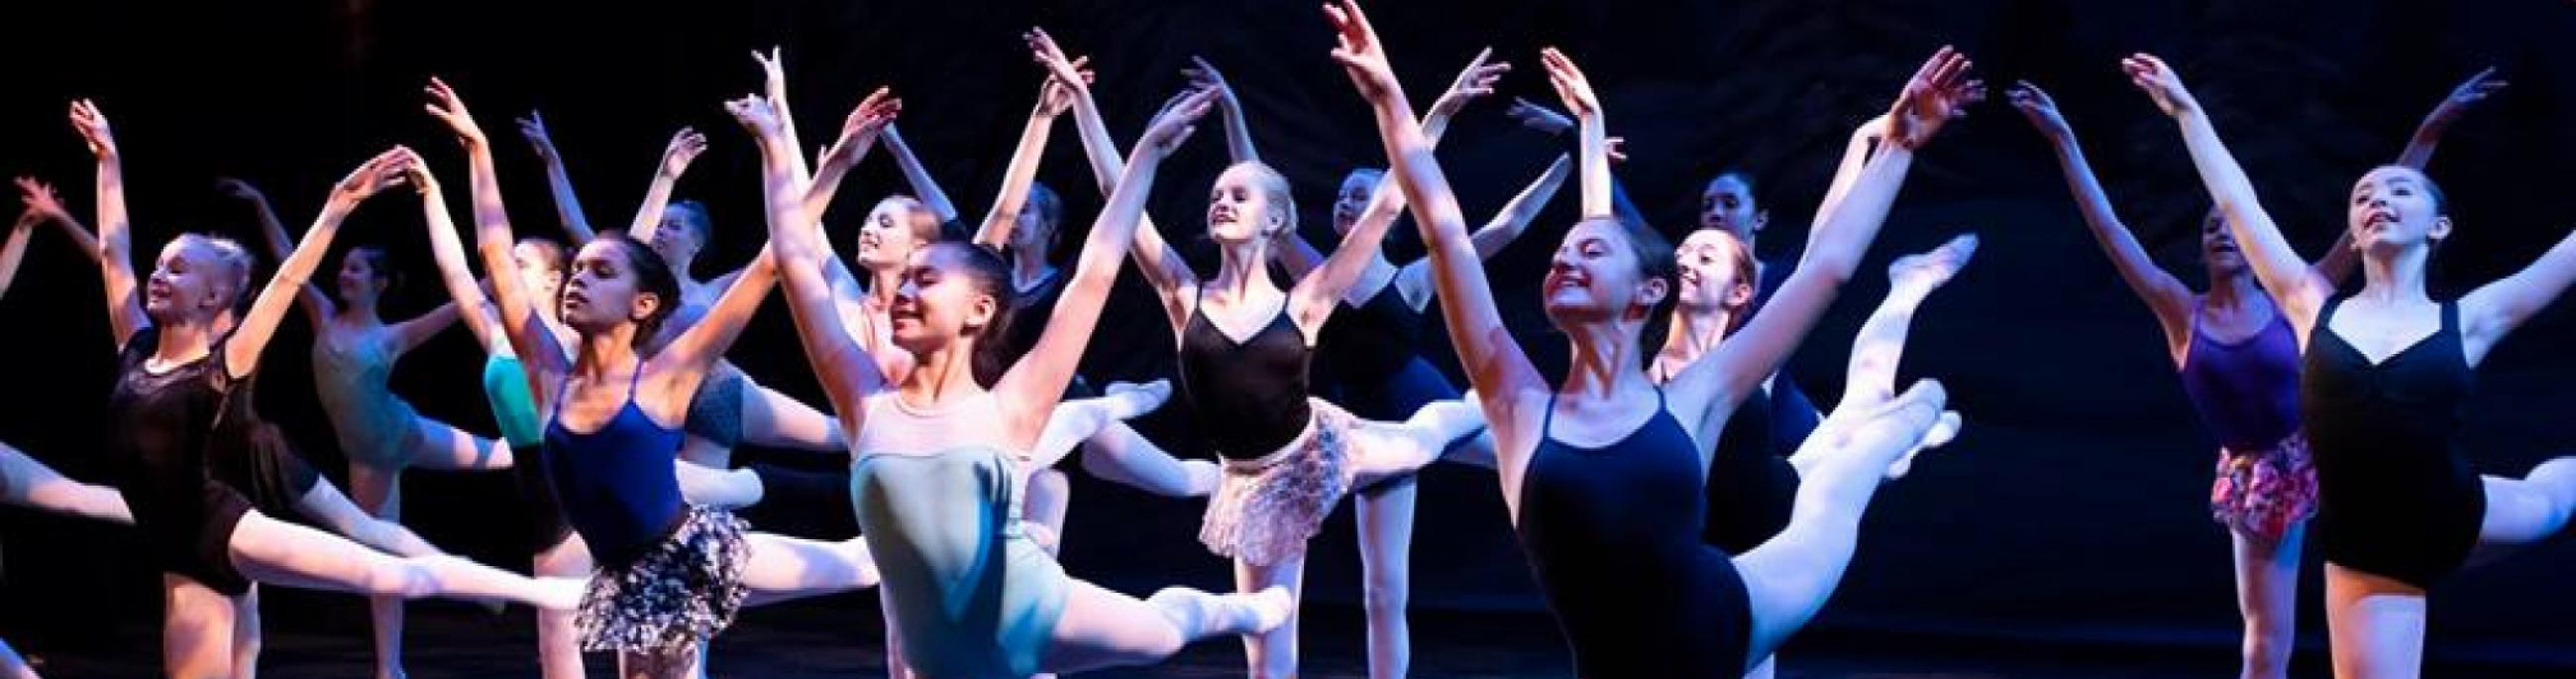 Ballet Etudes fulfills the artistic needs of serious young dancers who desire performing opportunities of the highest caliber.